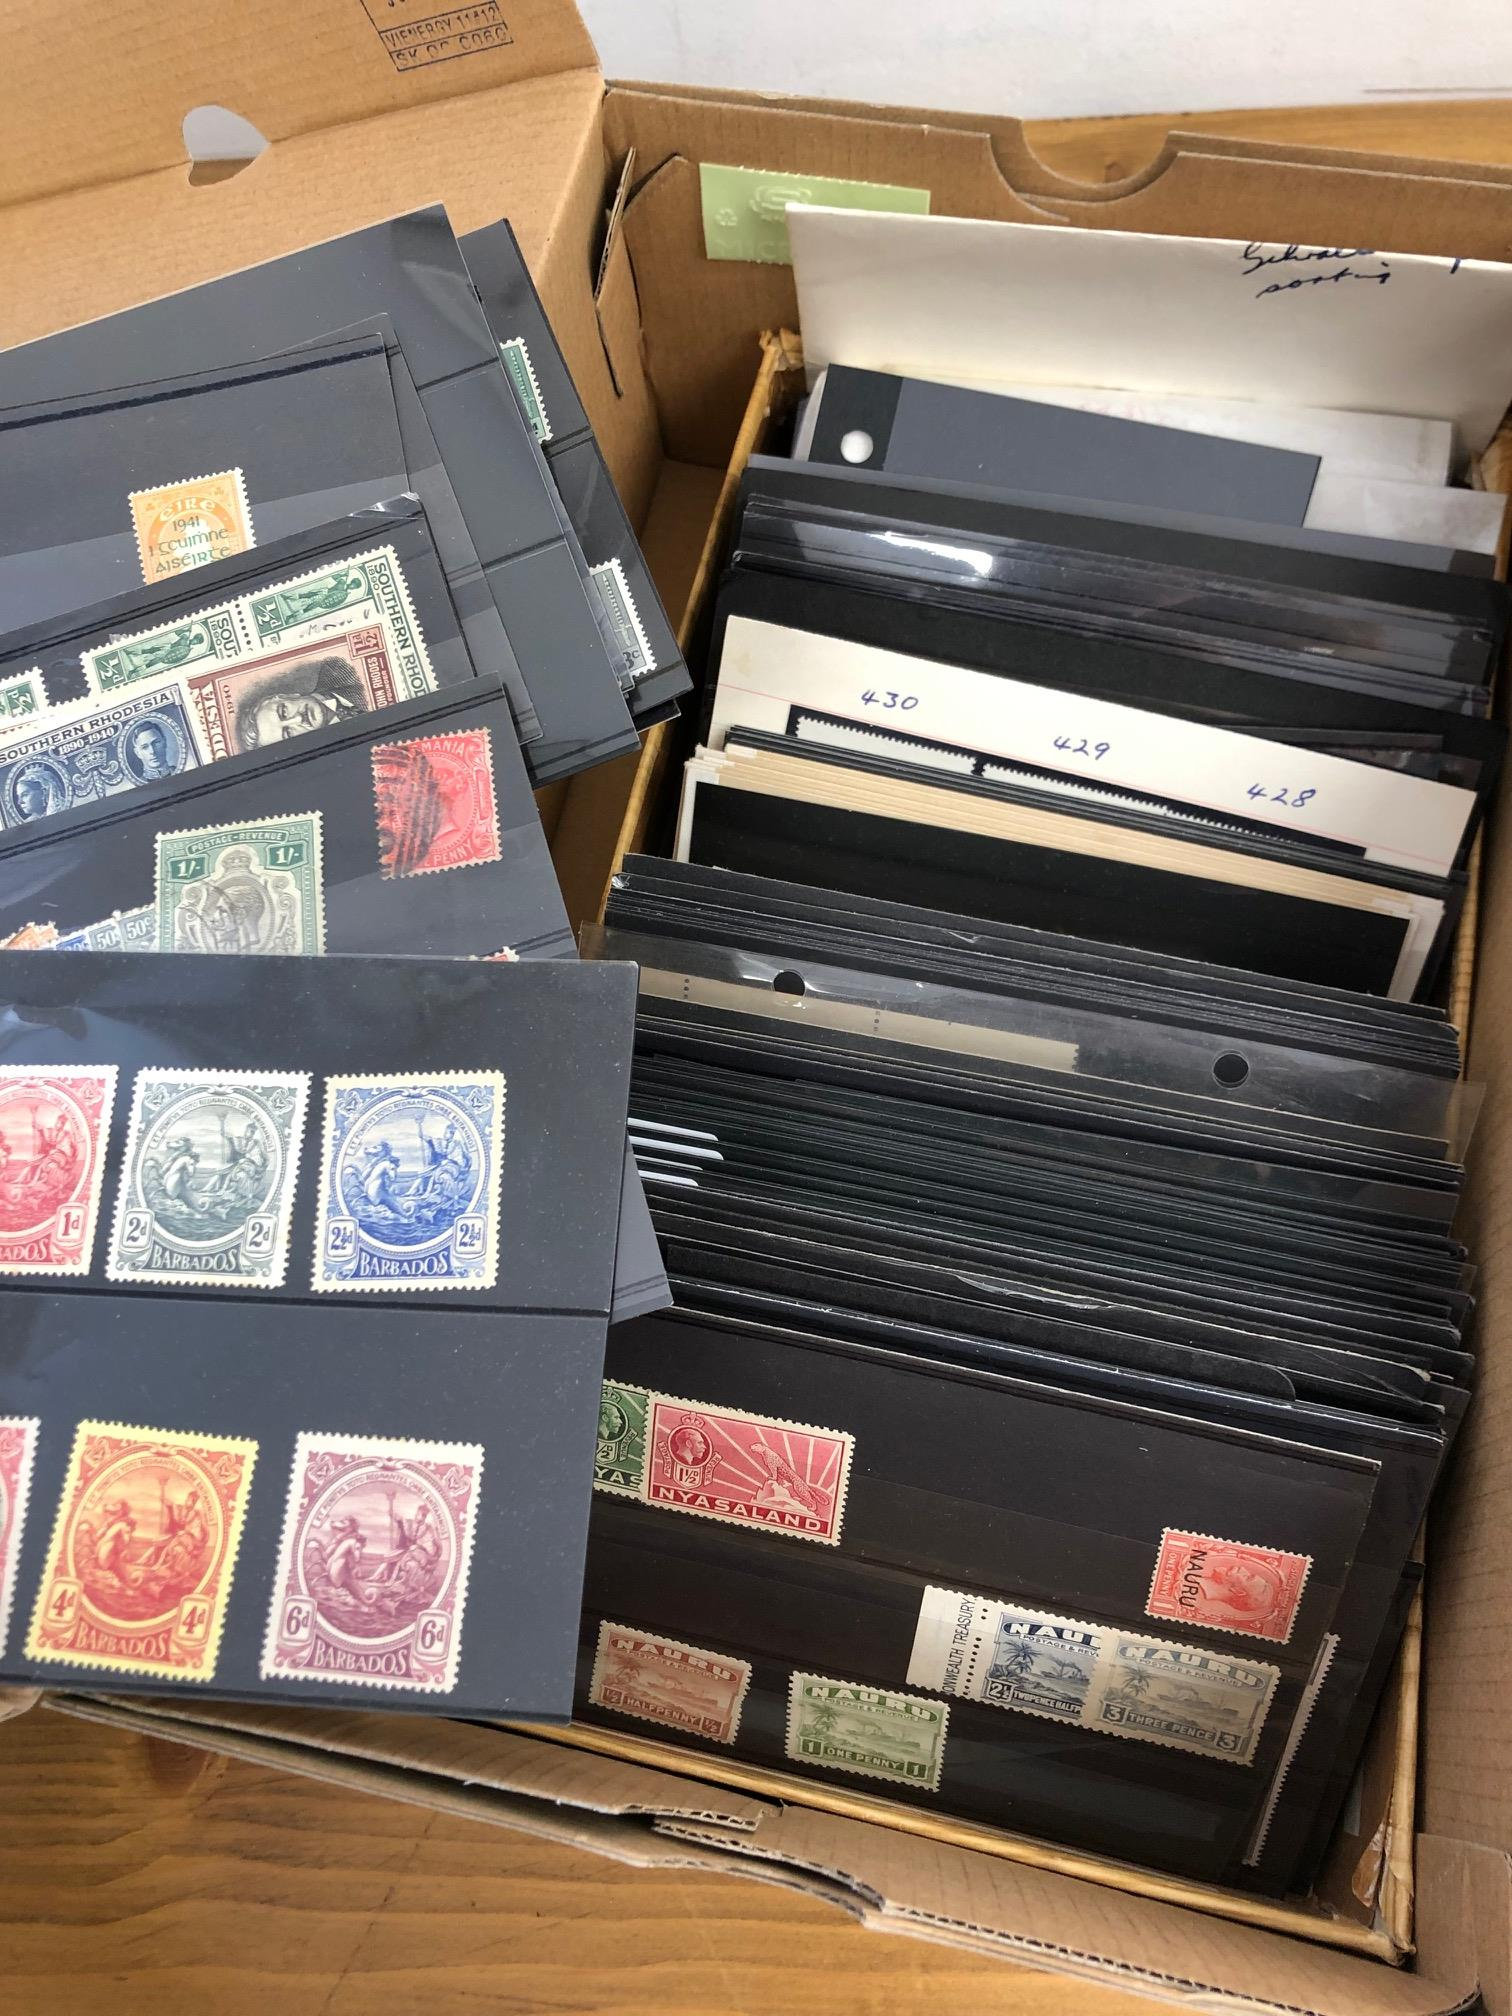 COMMONWEALTH shoebox containing over 150 stock cards comprising a collector's extras. Noted some